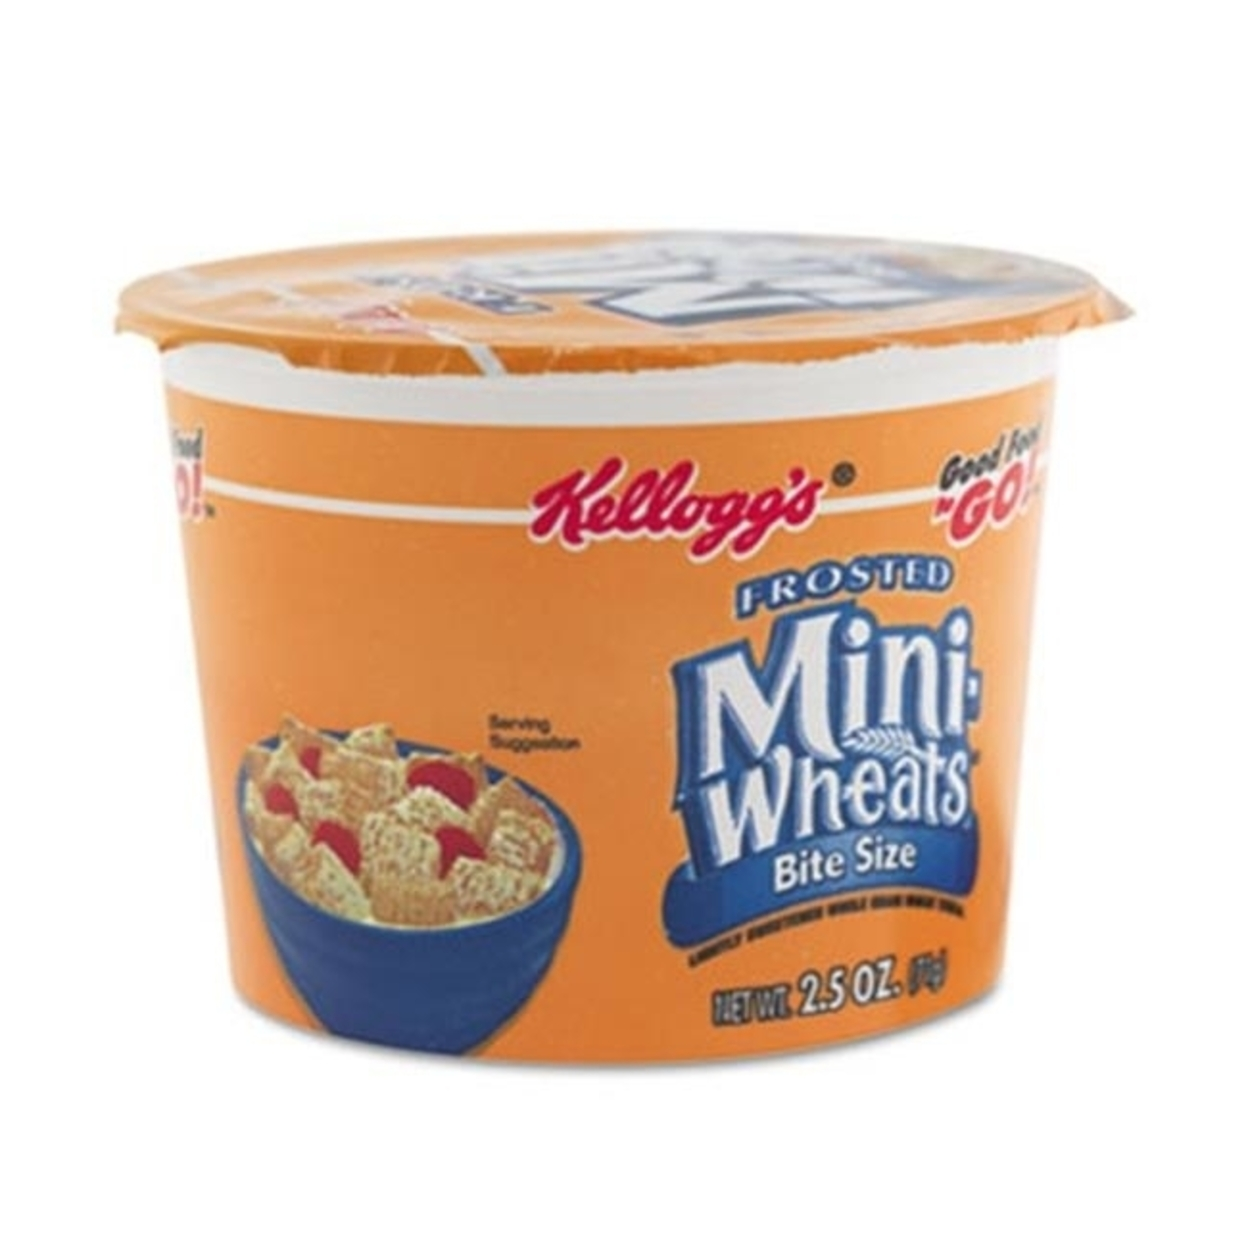 Keebler 42799 Breakfast Cereal Frosted Mini Wheats Single-Serve 2.5 oz 6 Cups-Box 5a3d6324e2246116f7601ea4